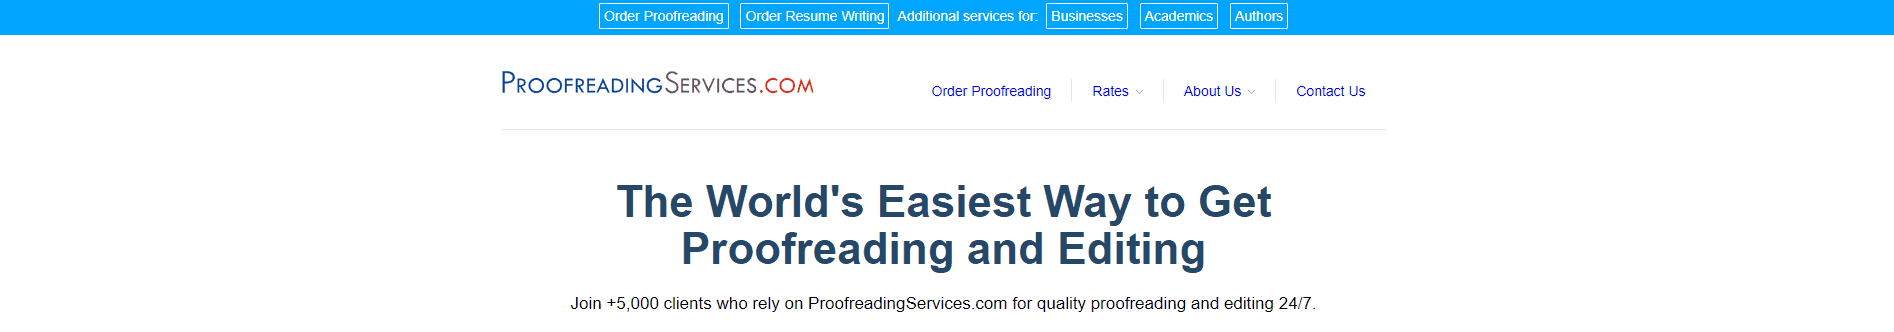 Proofreading Services Screenshot